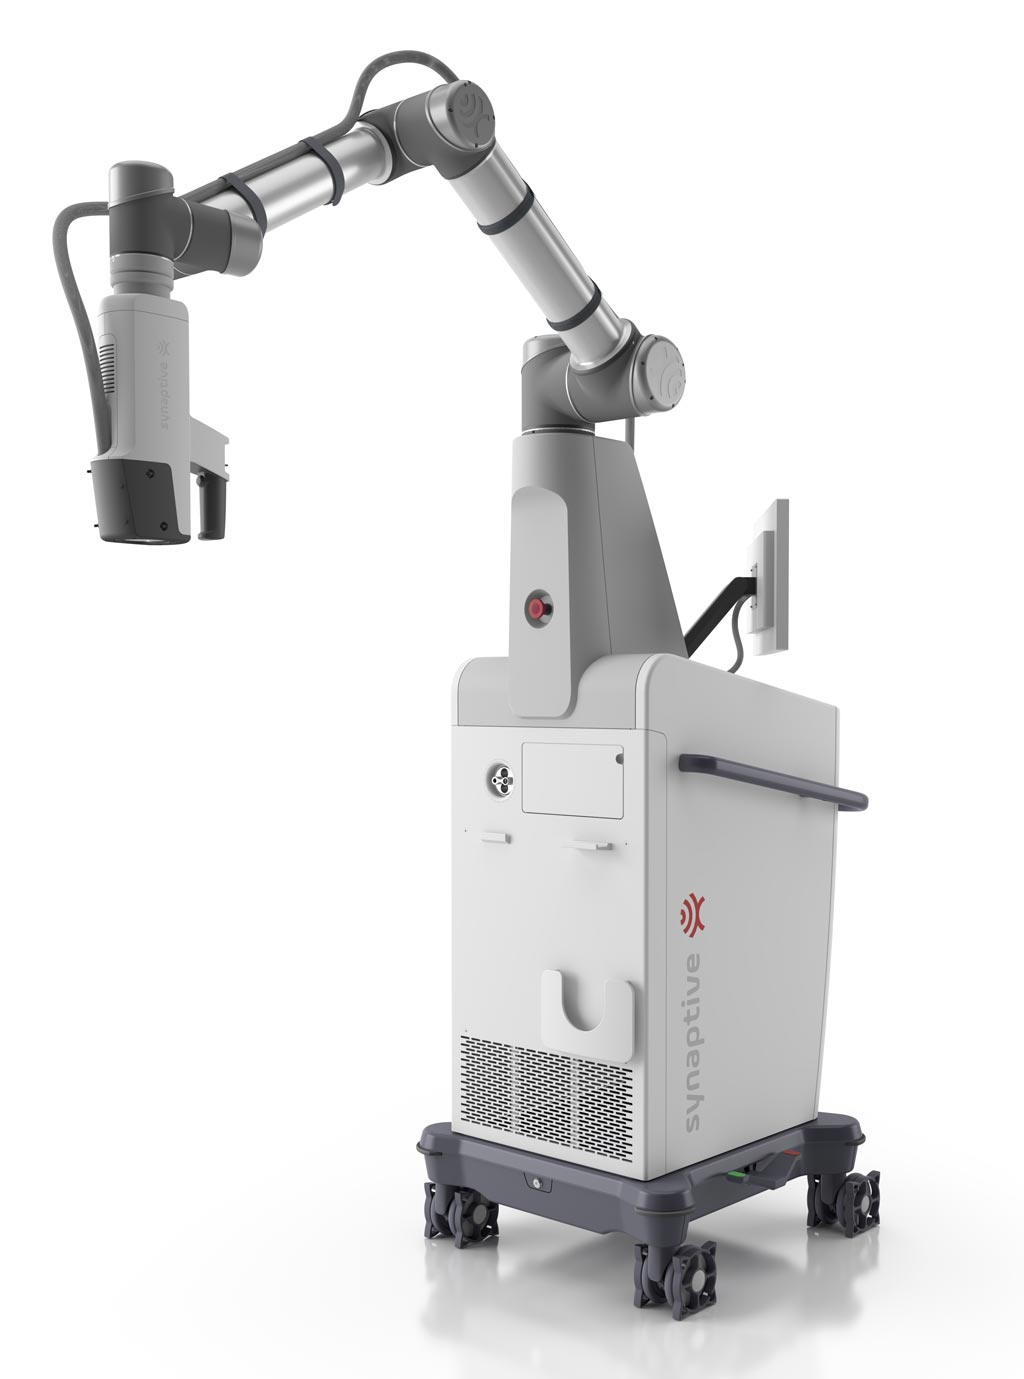 Image: The Modus V provides an alternative to the traditional operating microscope featuring an ocular or eyepiece that is commonly used by neurosurgeons to view magnified images of the brain (Photo courtesy of Synaptive Medical).